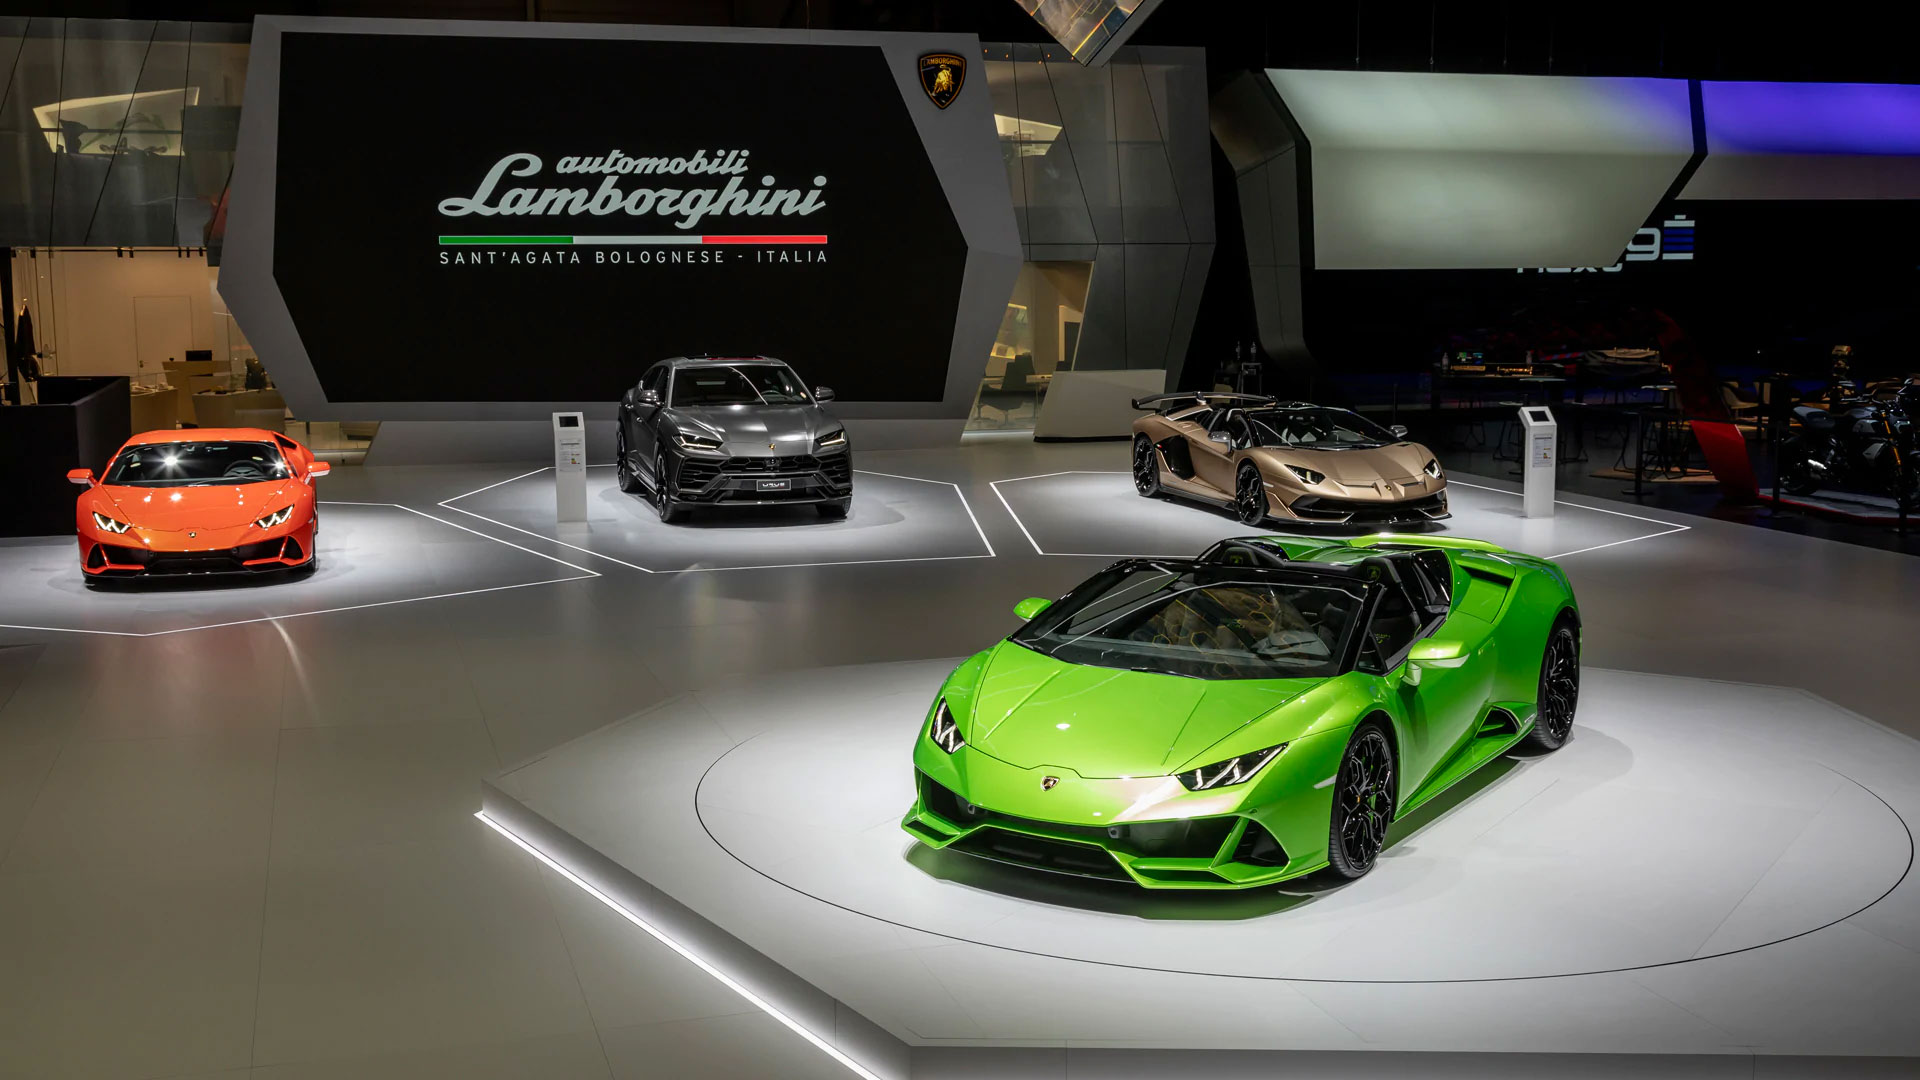 News roundup from the Geneva Motor Show 2019